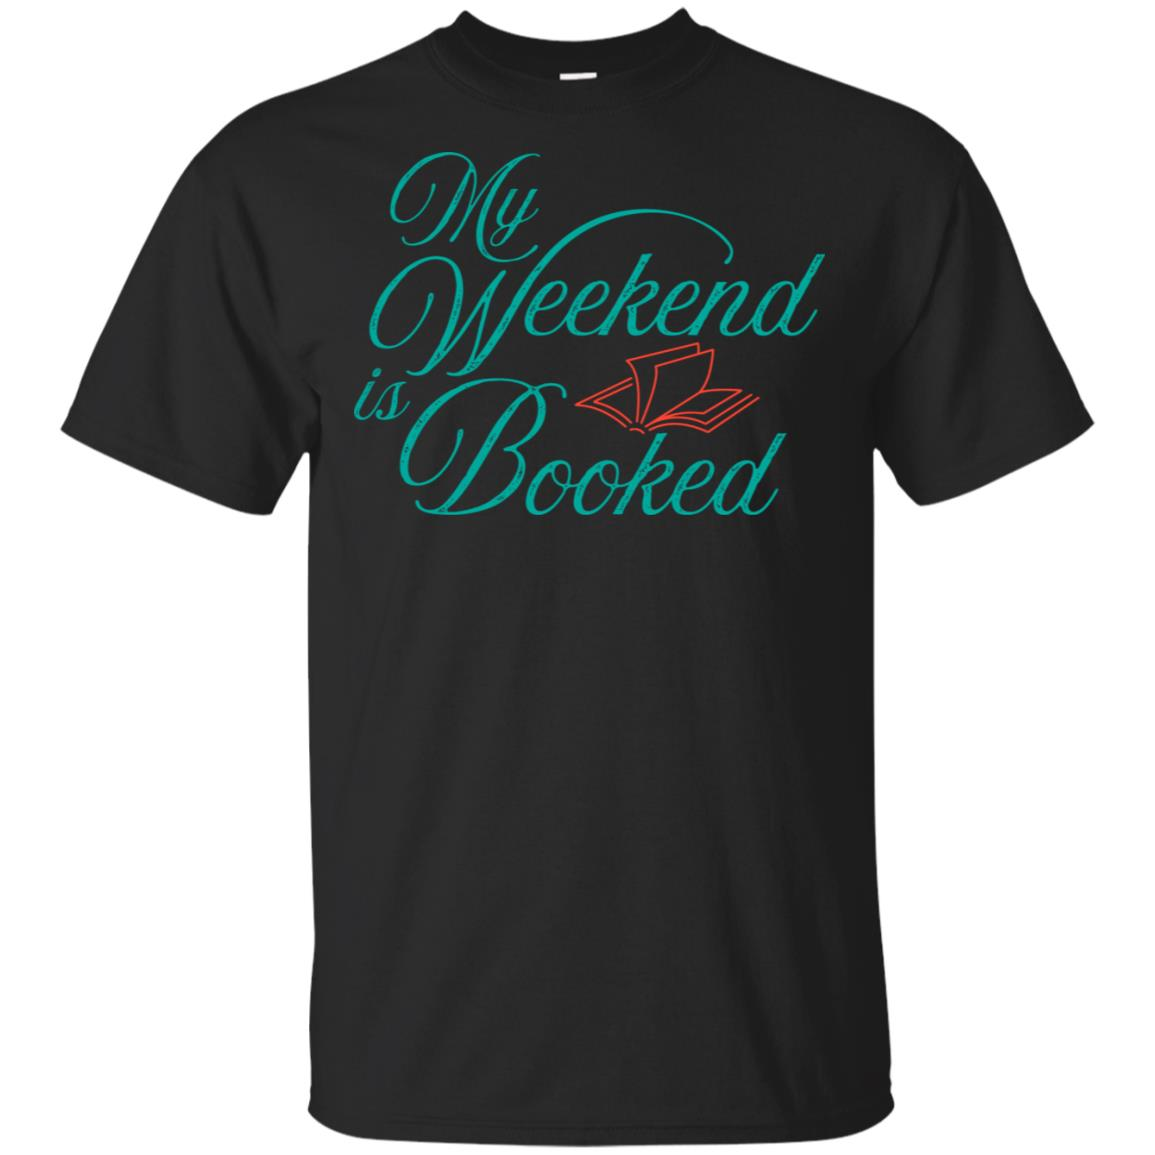 My Weekend Is Booked Readings Great Gift Unisex Short Sleeve